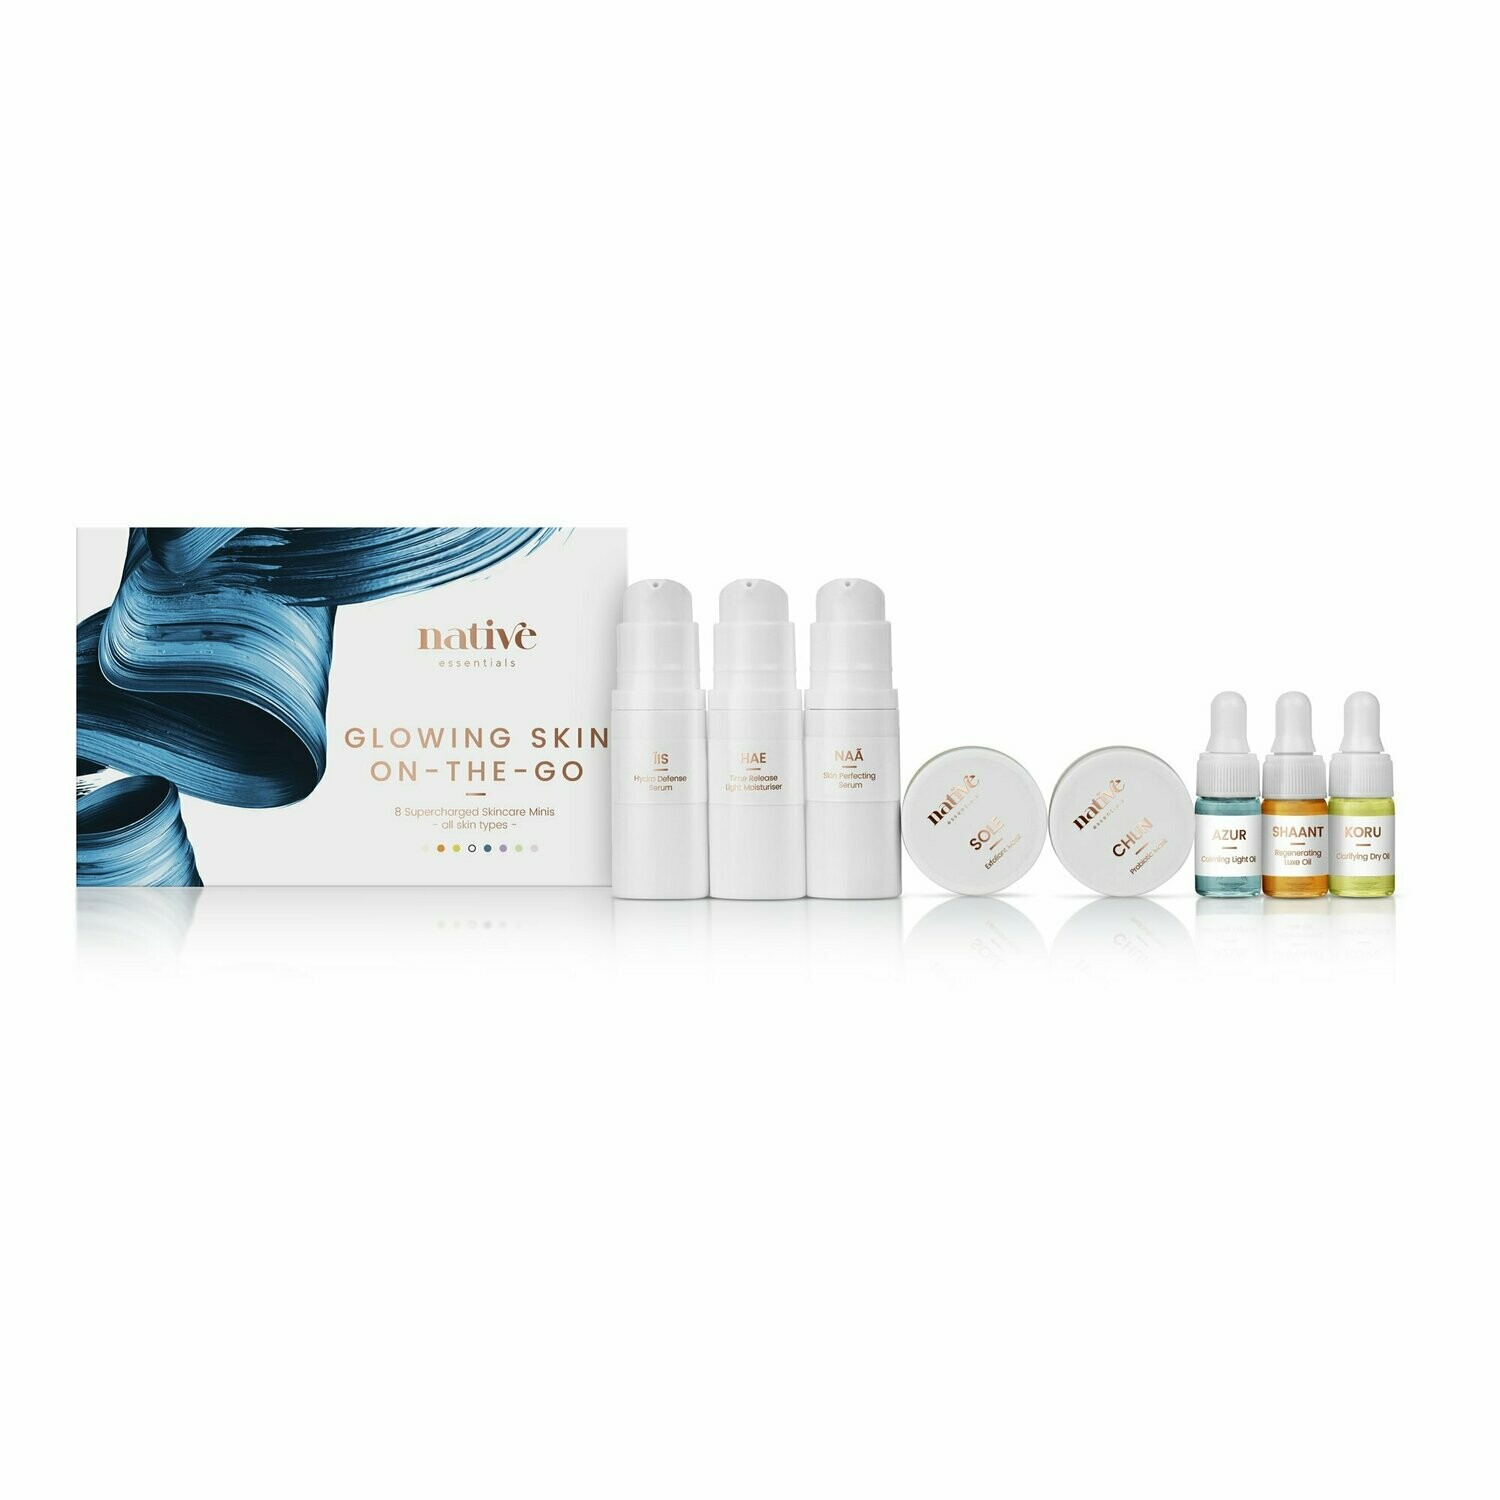 NATIVE ESSENTIALS Glowing Skin On-The-Go